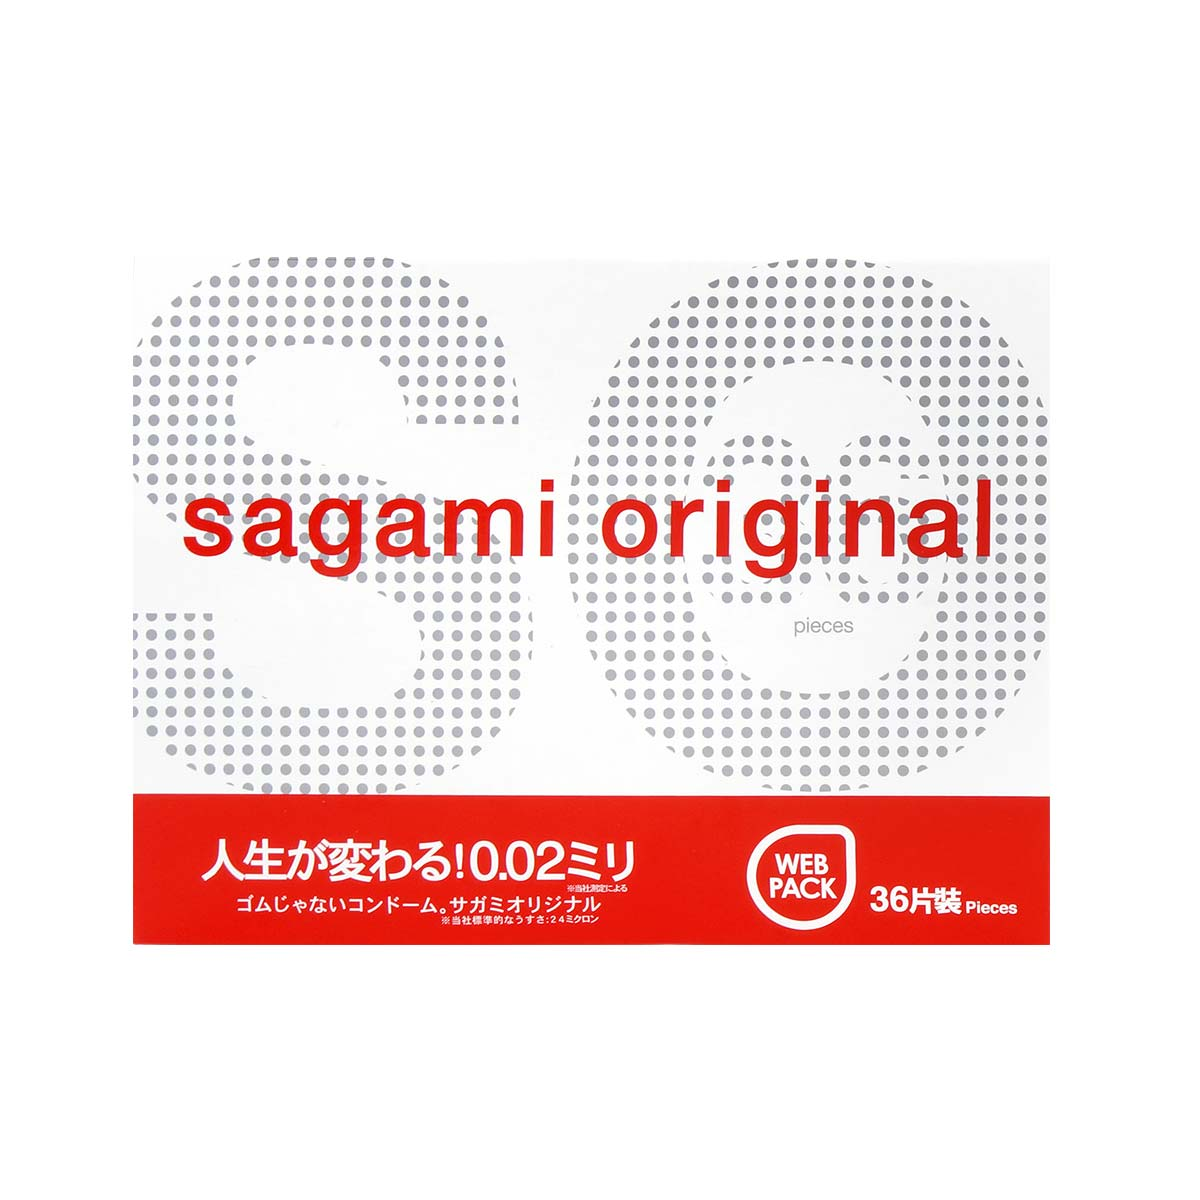 Sagami Original 0.02 (2nd generation) 36's Pack PU Condom